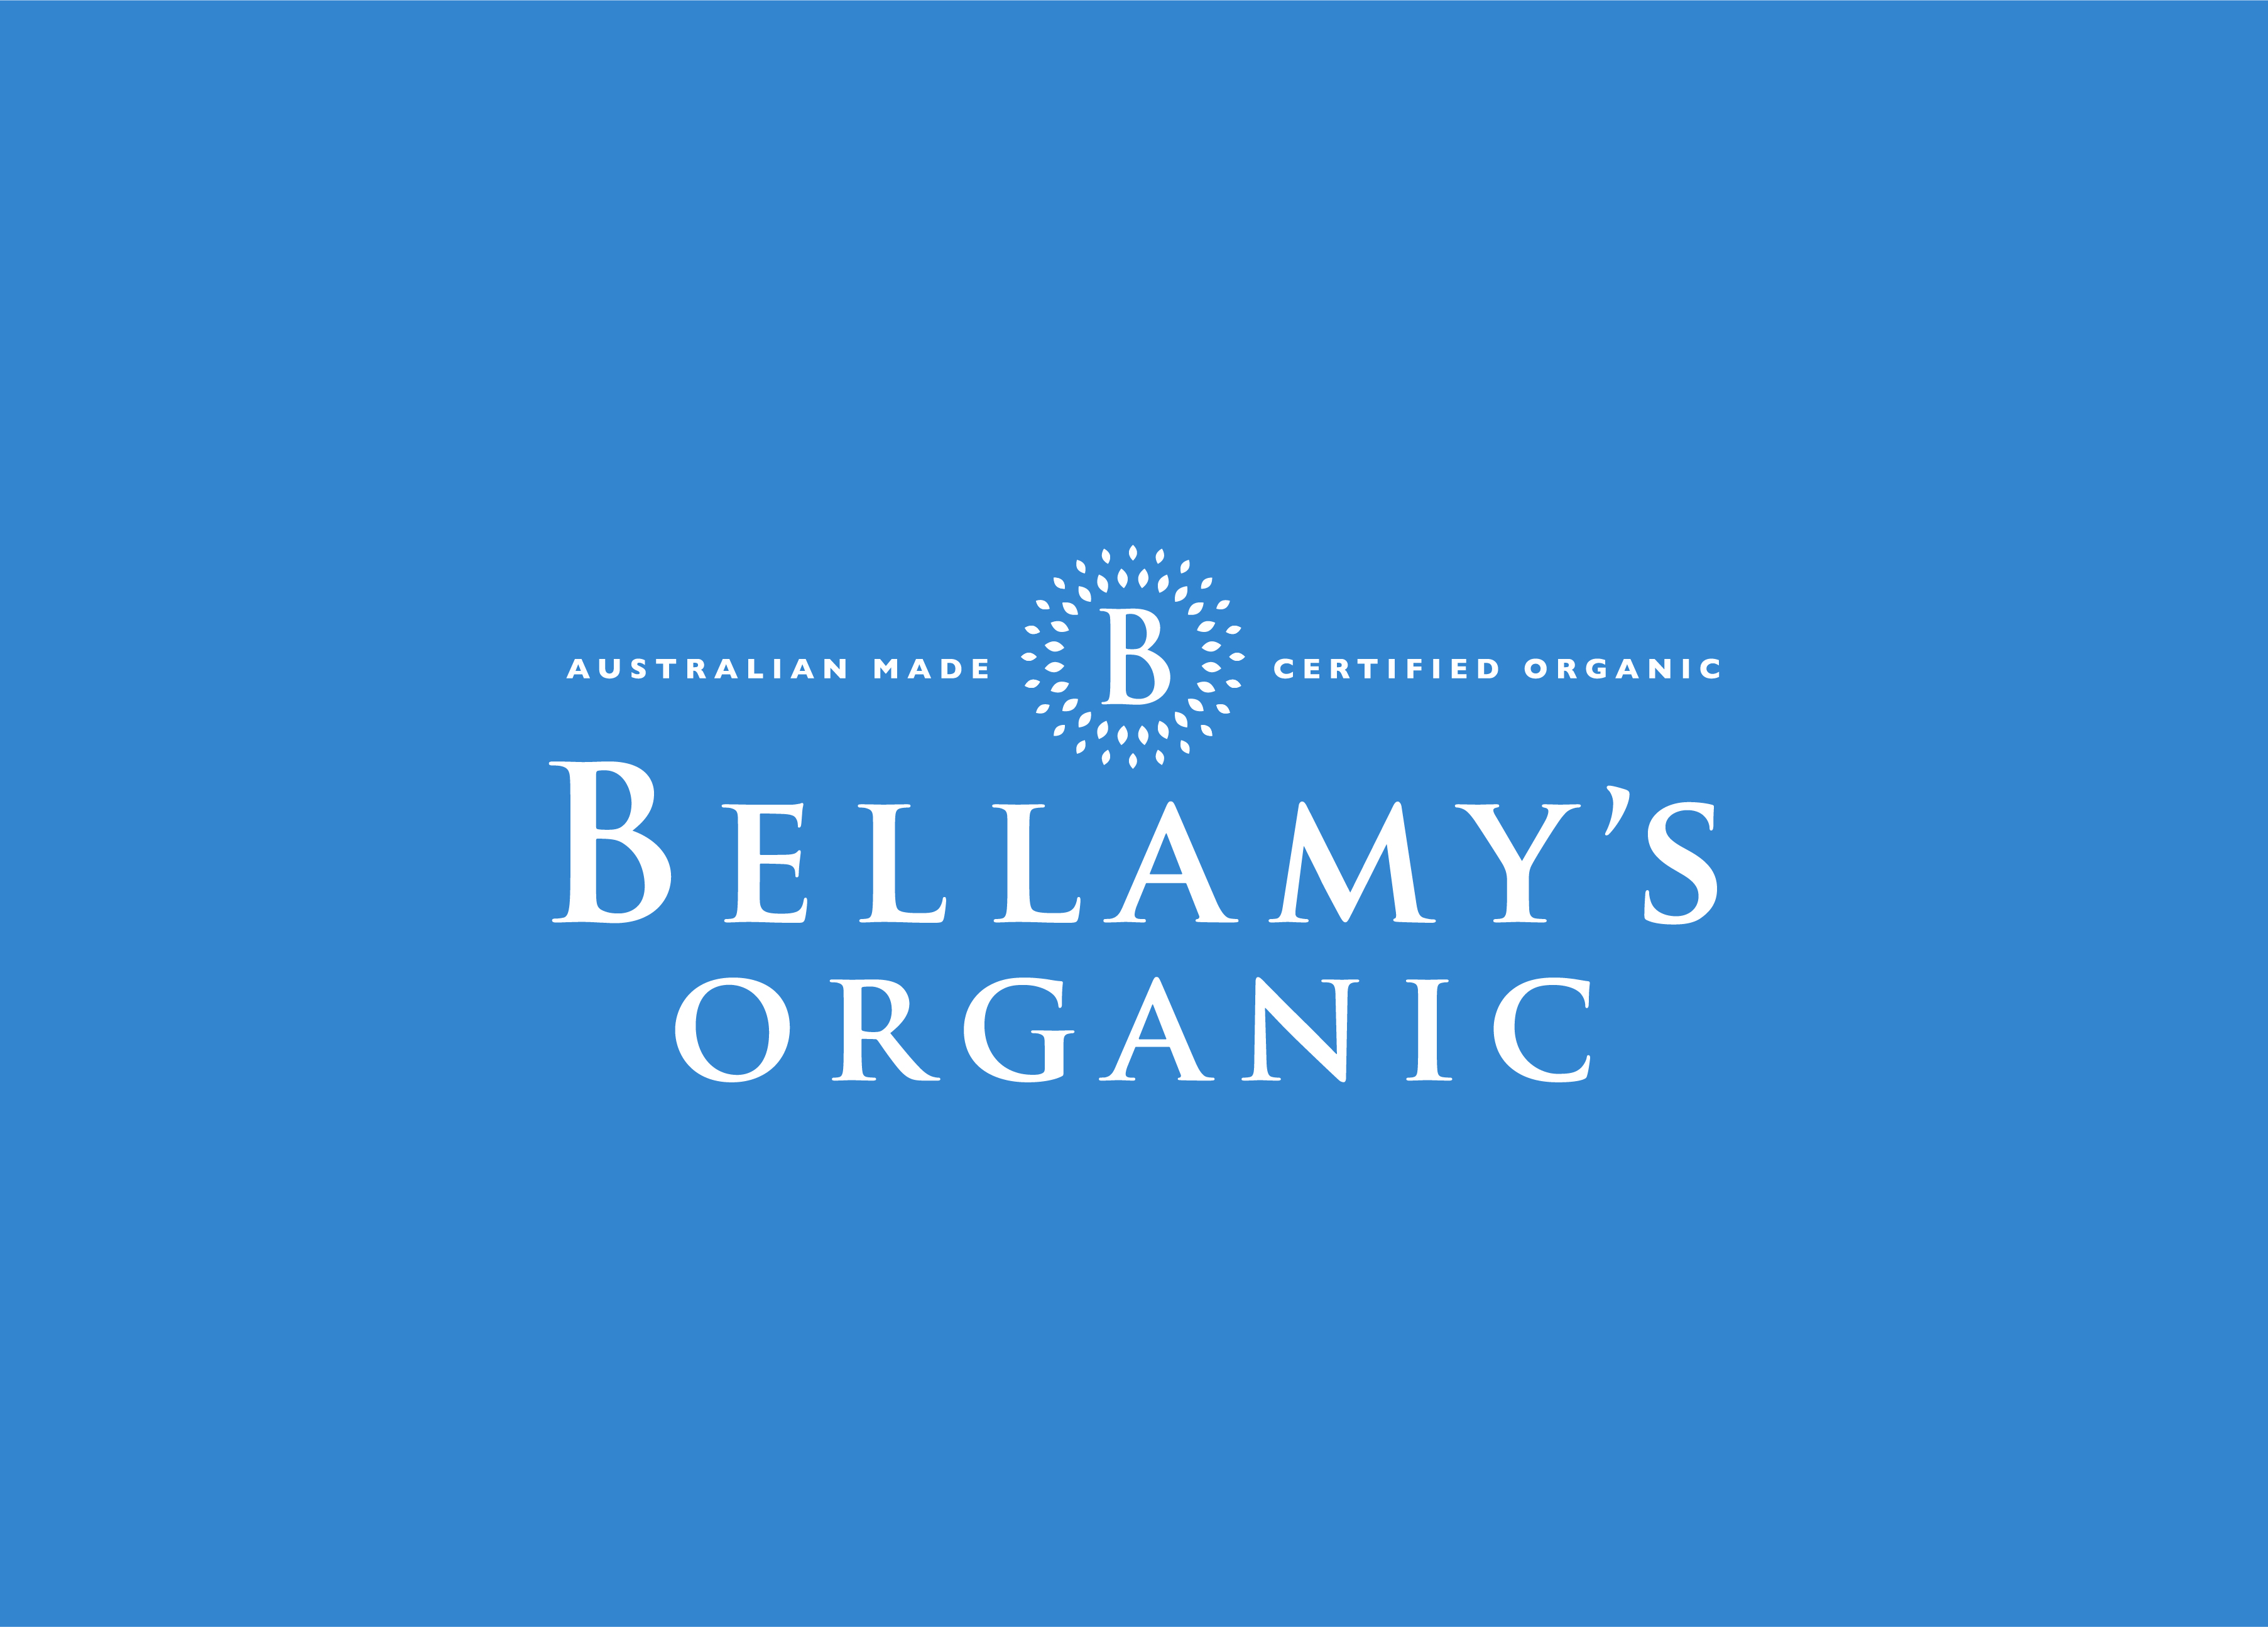 Bellamy's Organic - Wikipedia